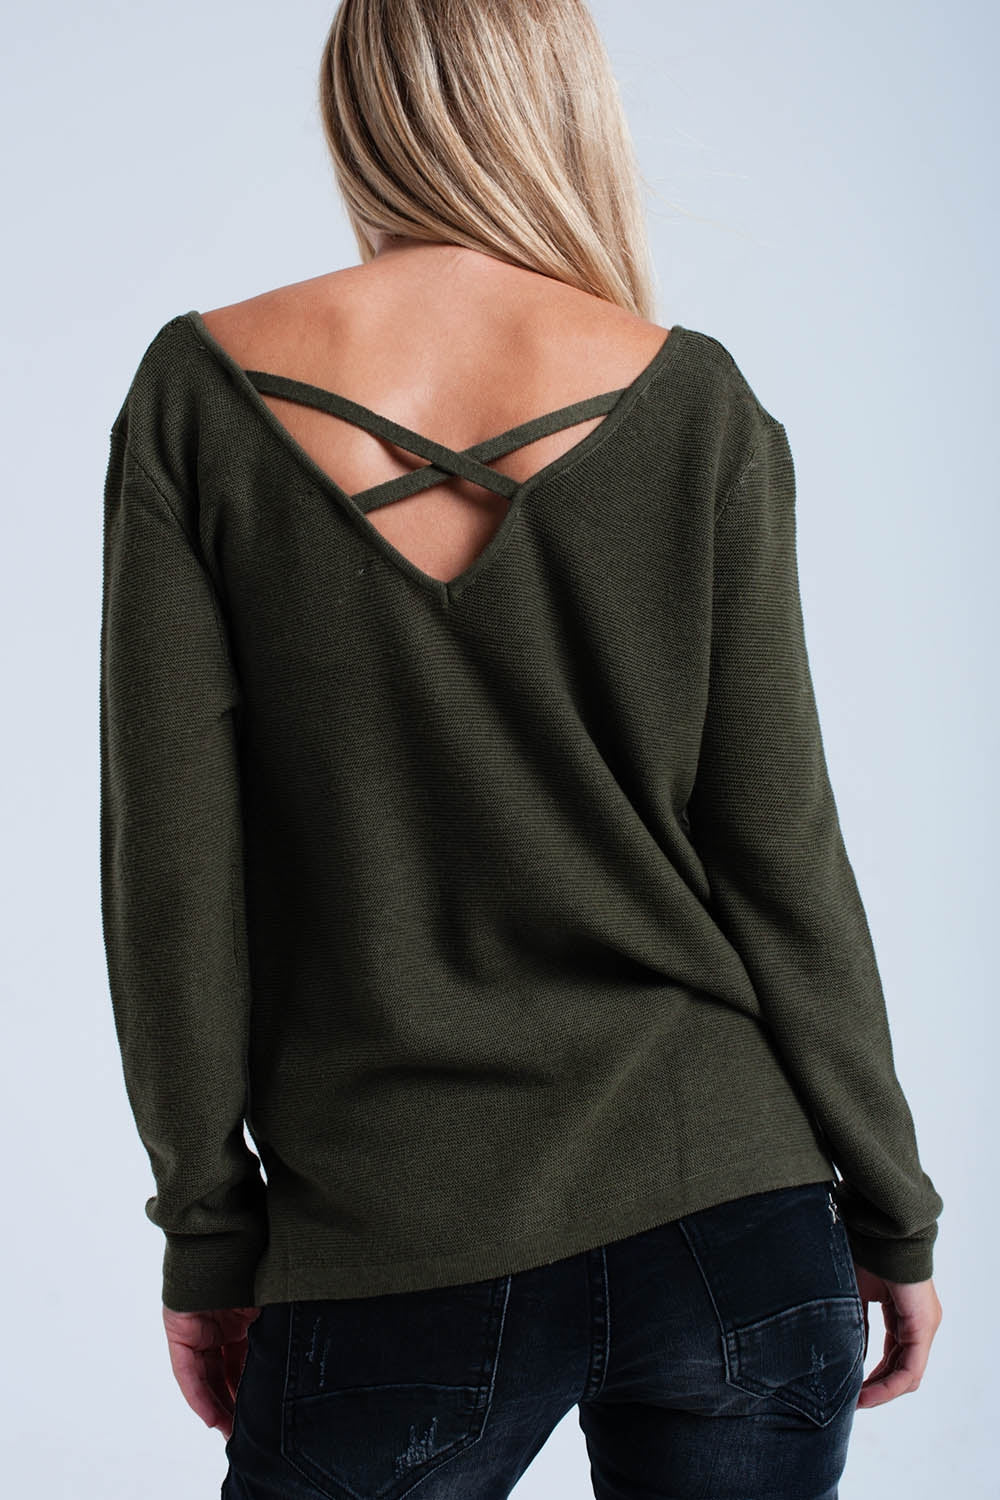 Khaki Ribbed Sweater-Women - Apparel - Sweaters - Pull Over-Product Details Khaki ribbed sweater with a V neck and cross back detail to the neck. It has long sleeves and side slits to the hem. Soft woven.-Keyomi-Sook